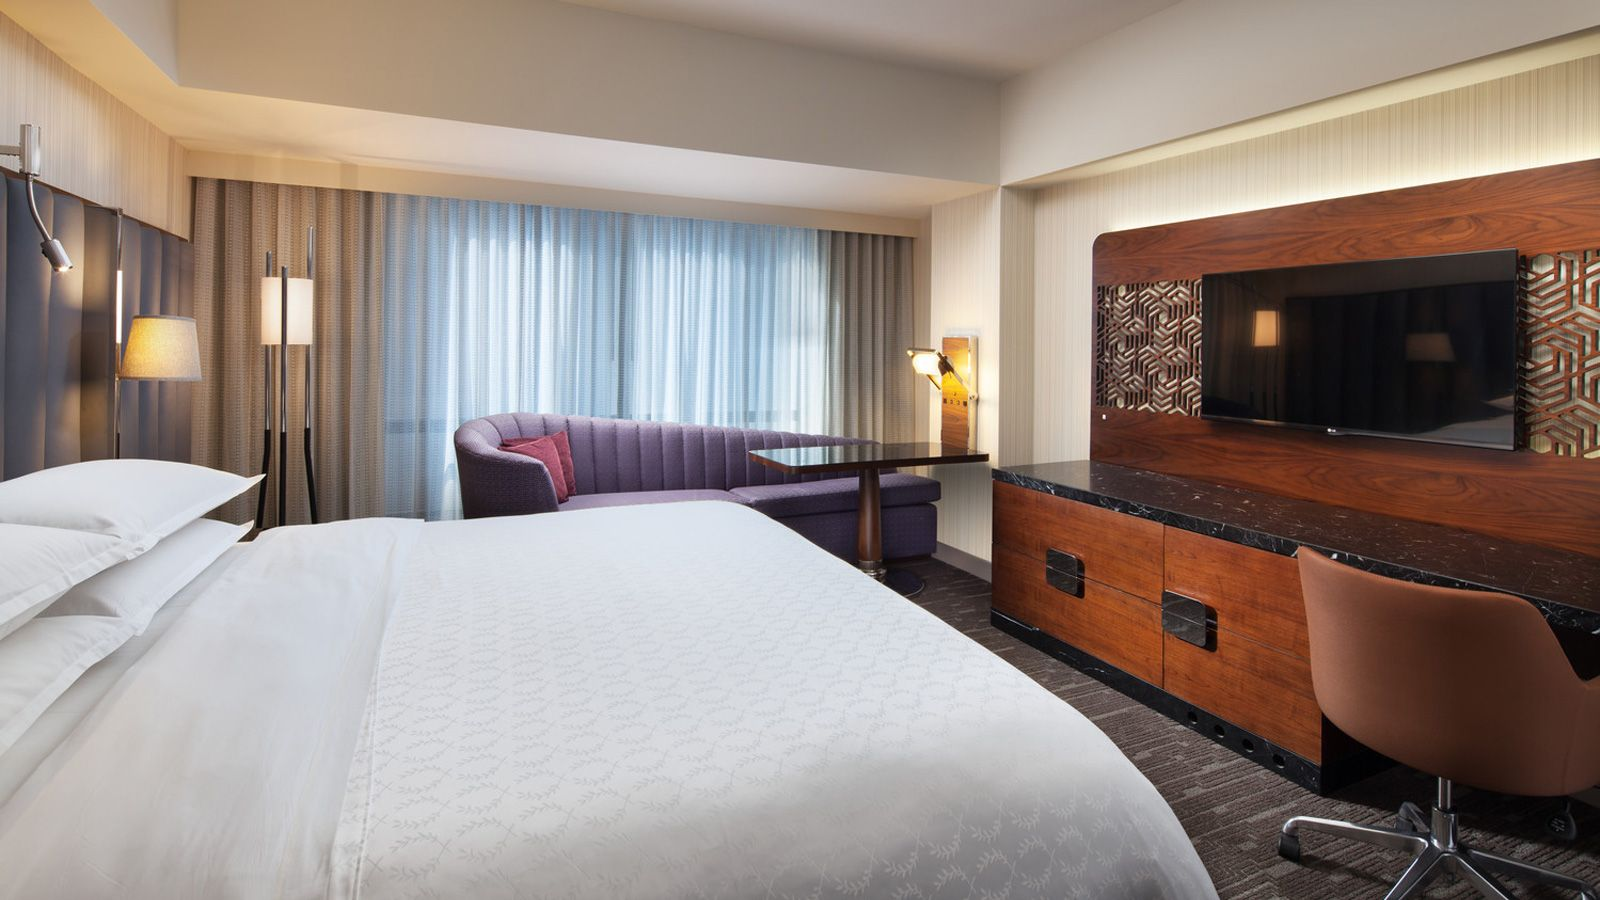 Sheraton Grand Los Angeles - Traditional King Guestroom